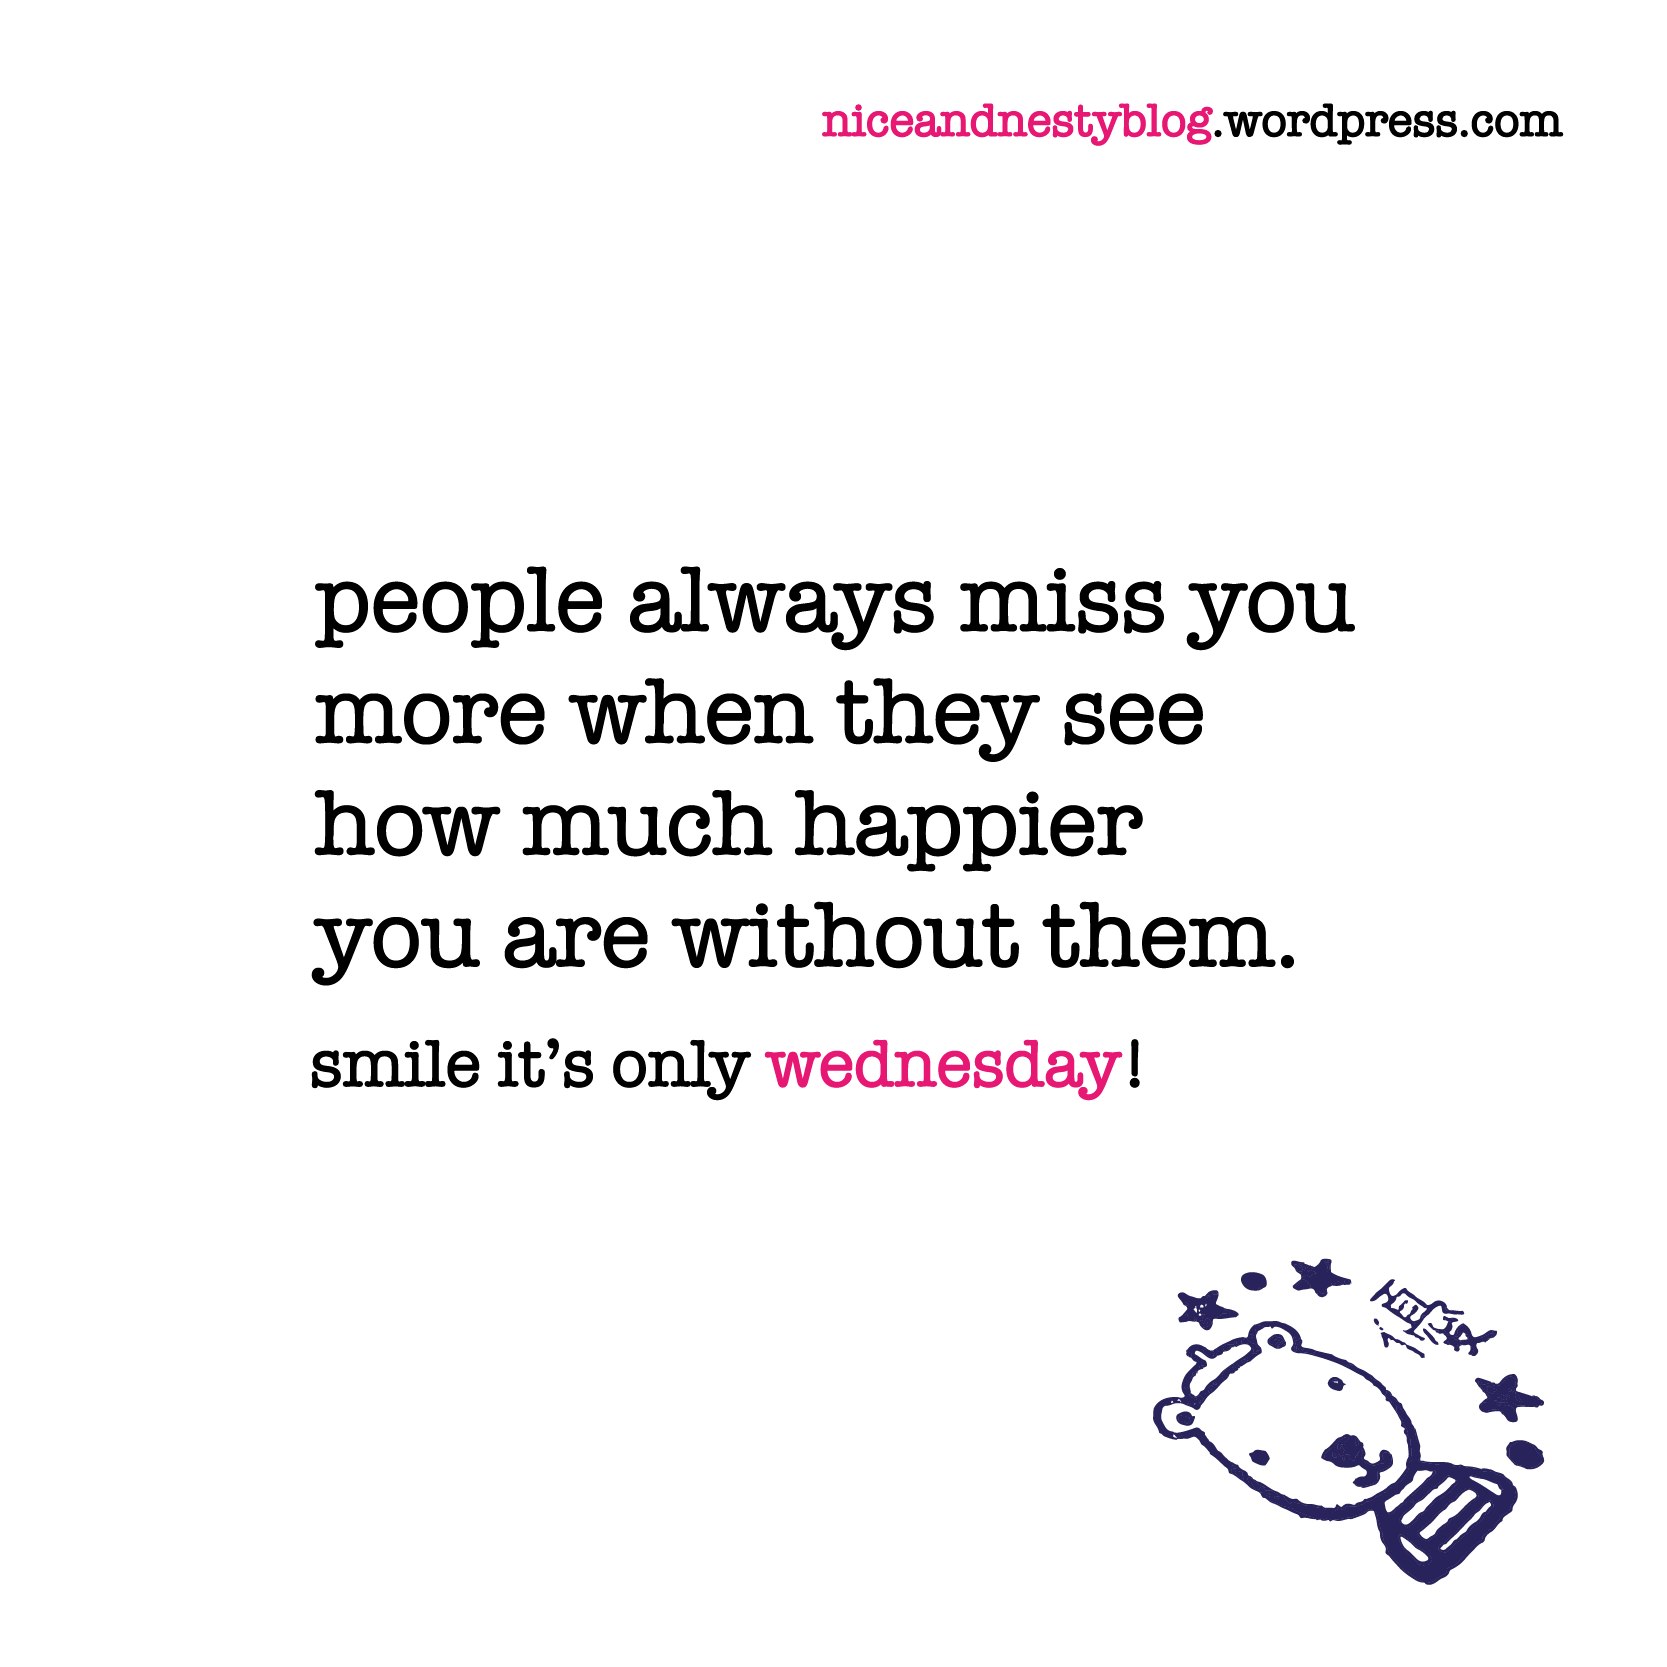 people always miss you more when they see how much happier you are without them. #people #always #miss #more #see #happy #happier #without #wednesday #witty #quote #niceandnesty #nice #nesty #funny #life #short #serious #smile | check out more www.niceandnestyblog.wordpress.com